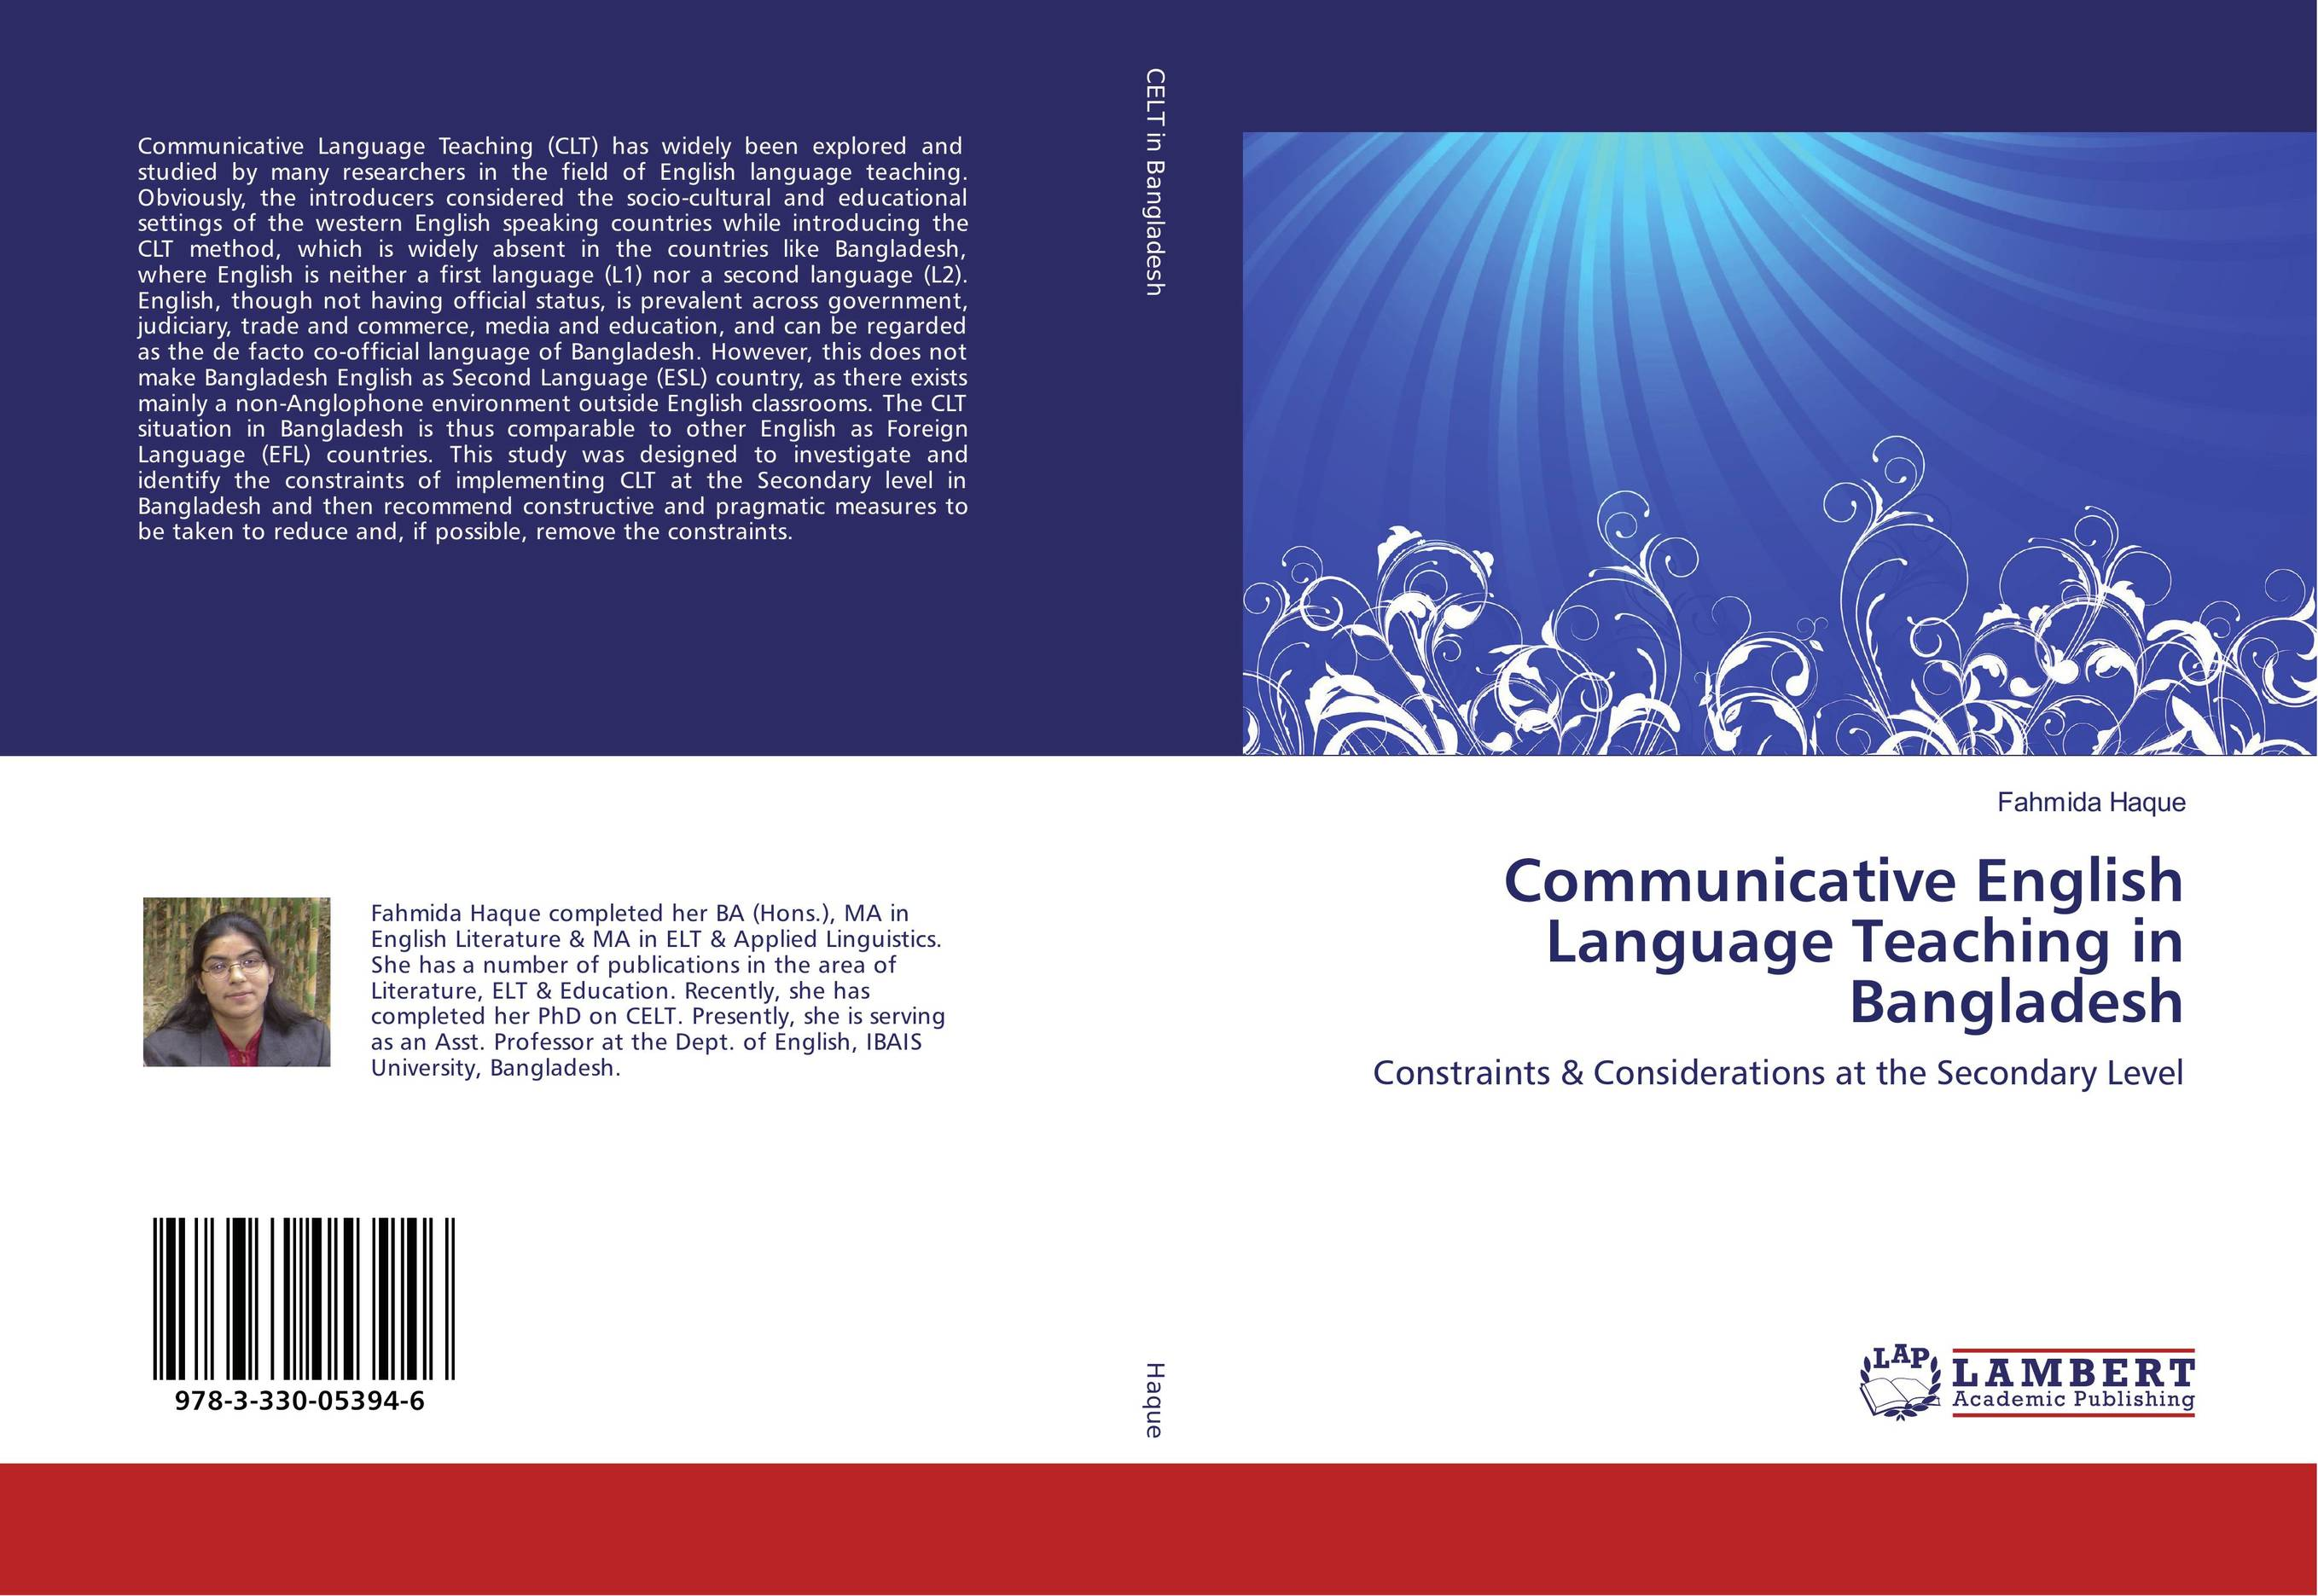 the communicative language teaching clt english language essay English language and applied linguistics postgraduate distance learning programmes essay & dissertation declaration of authorship  english language teaching esp – english for specific purposes fl – foreign language l1 – first language  communicative language teaching (clt) can be considered the most popular and desirable.